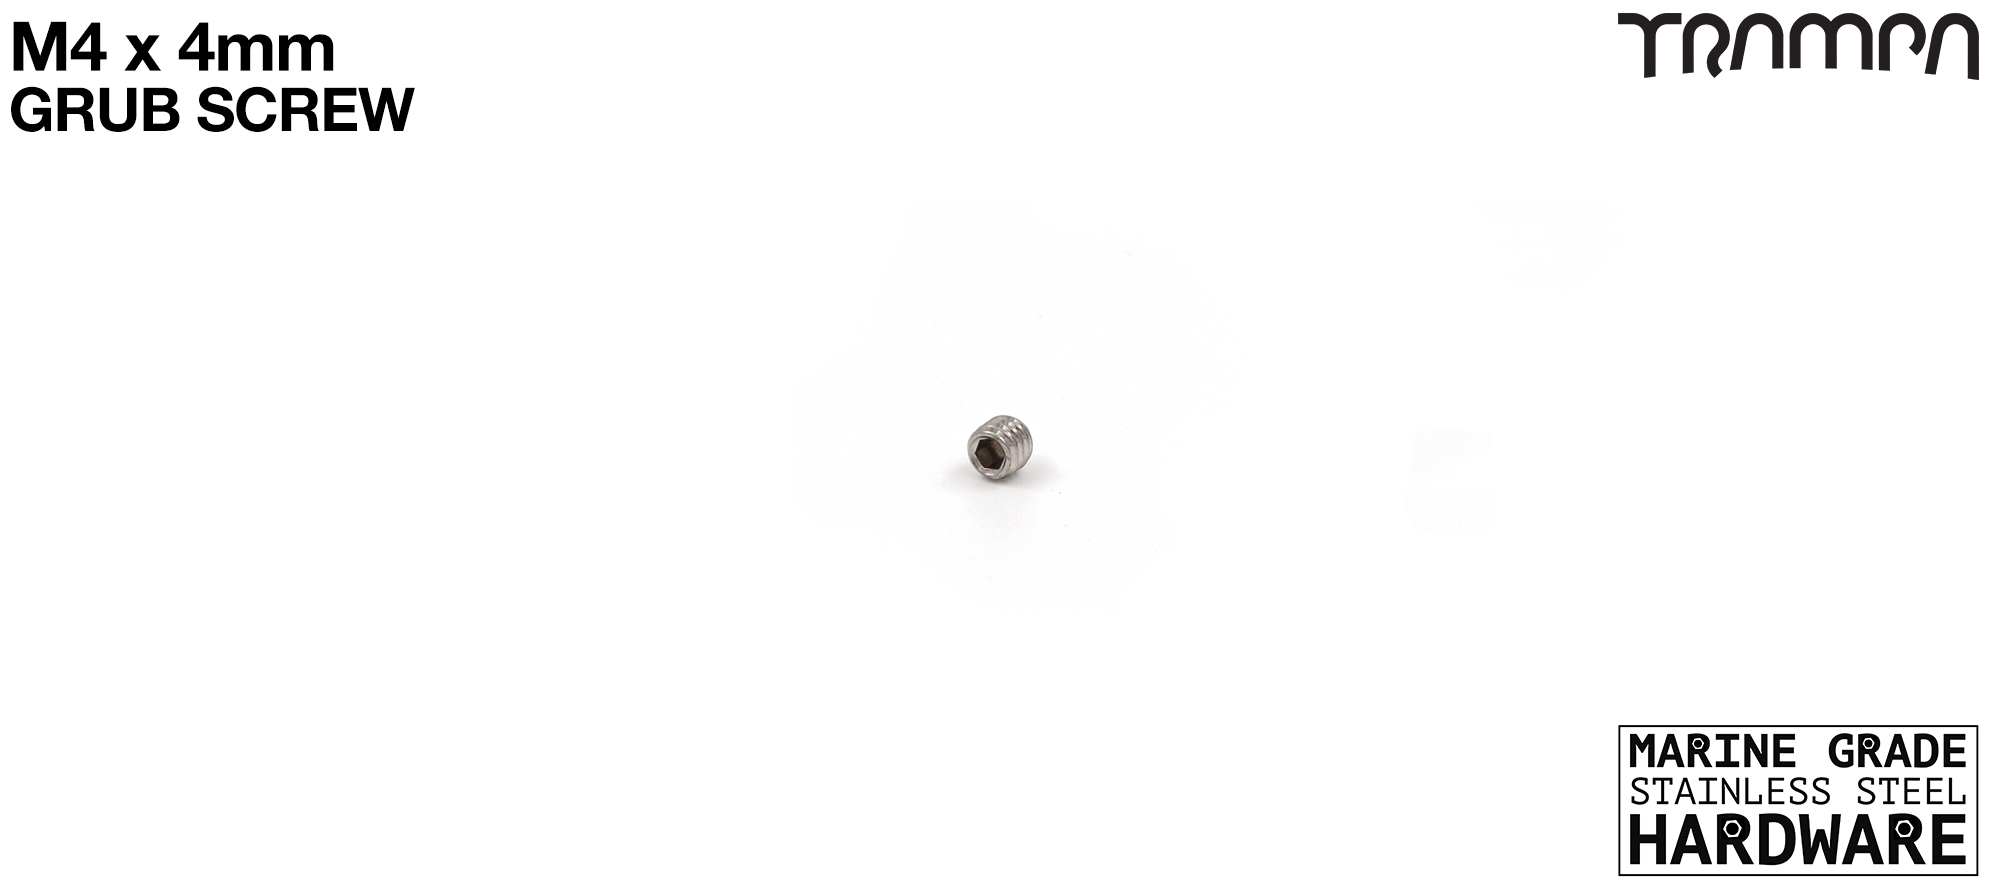 M4 x 4mm Grub Screw Marine Grade Stainless Steel - Connects the Motor Pulley onto the Motor Axle Shaft